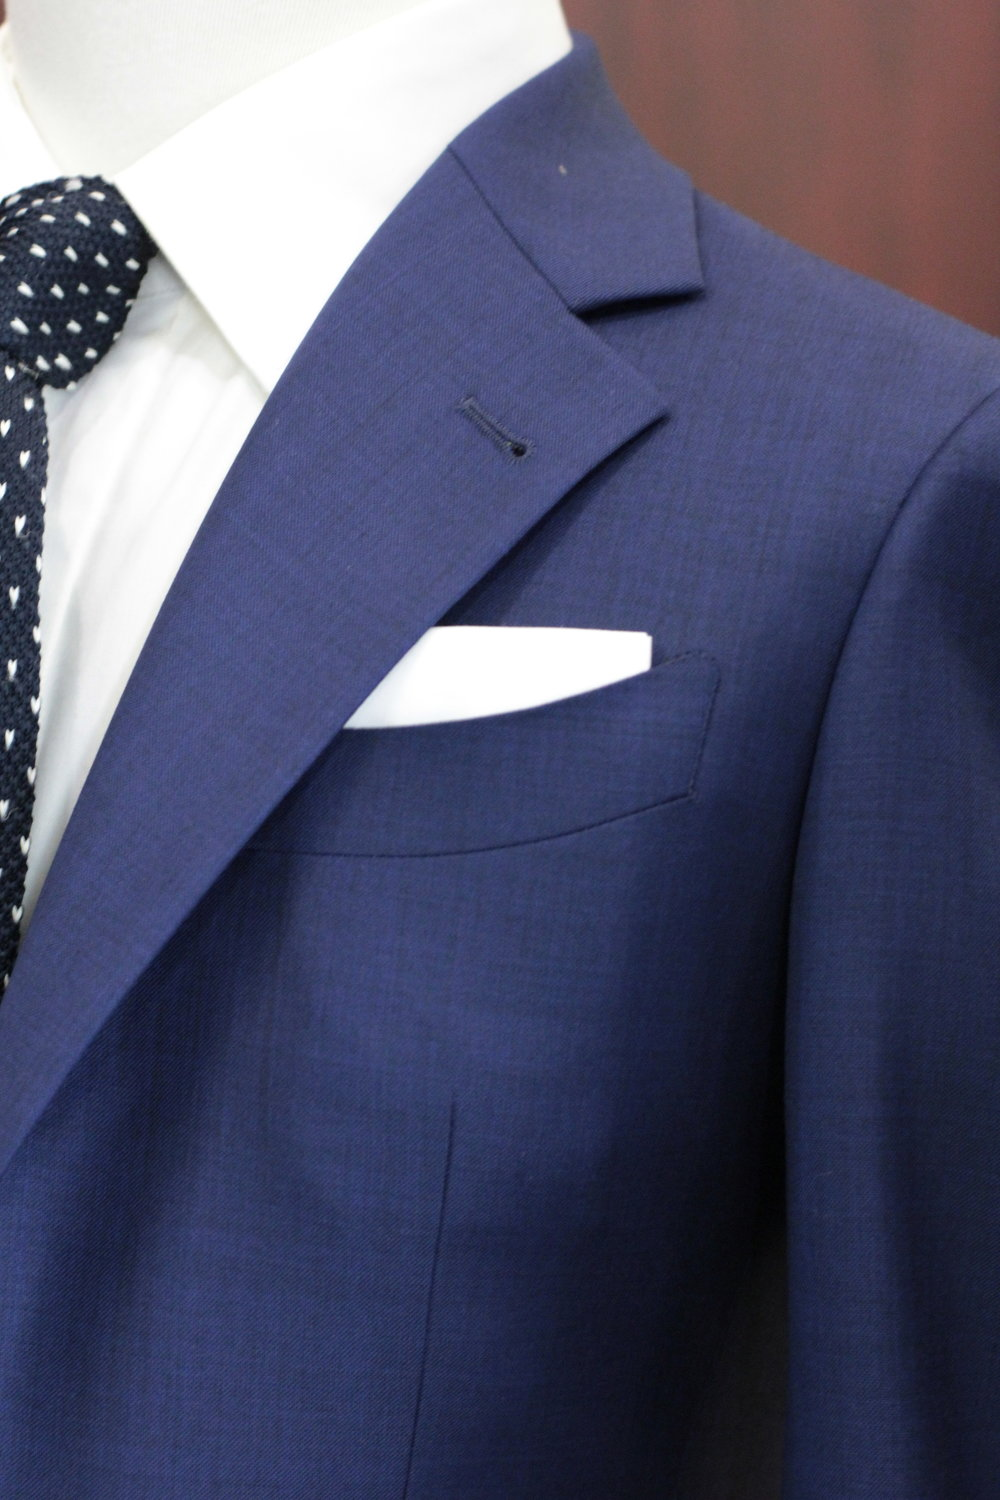 Notched Lapel.